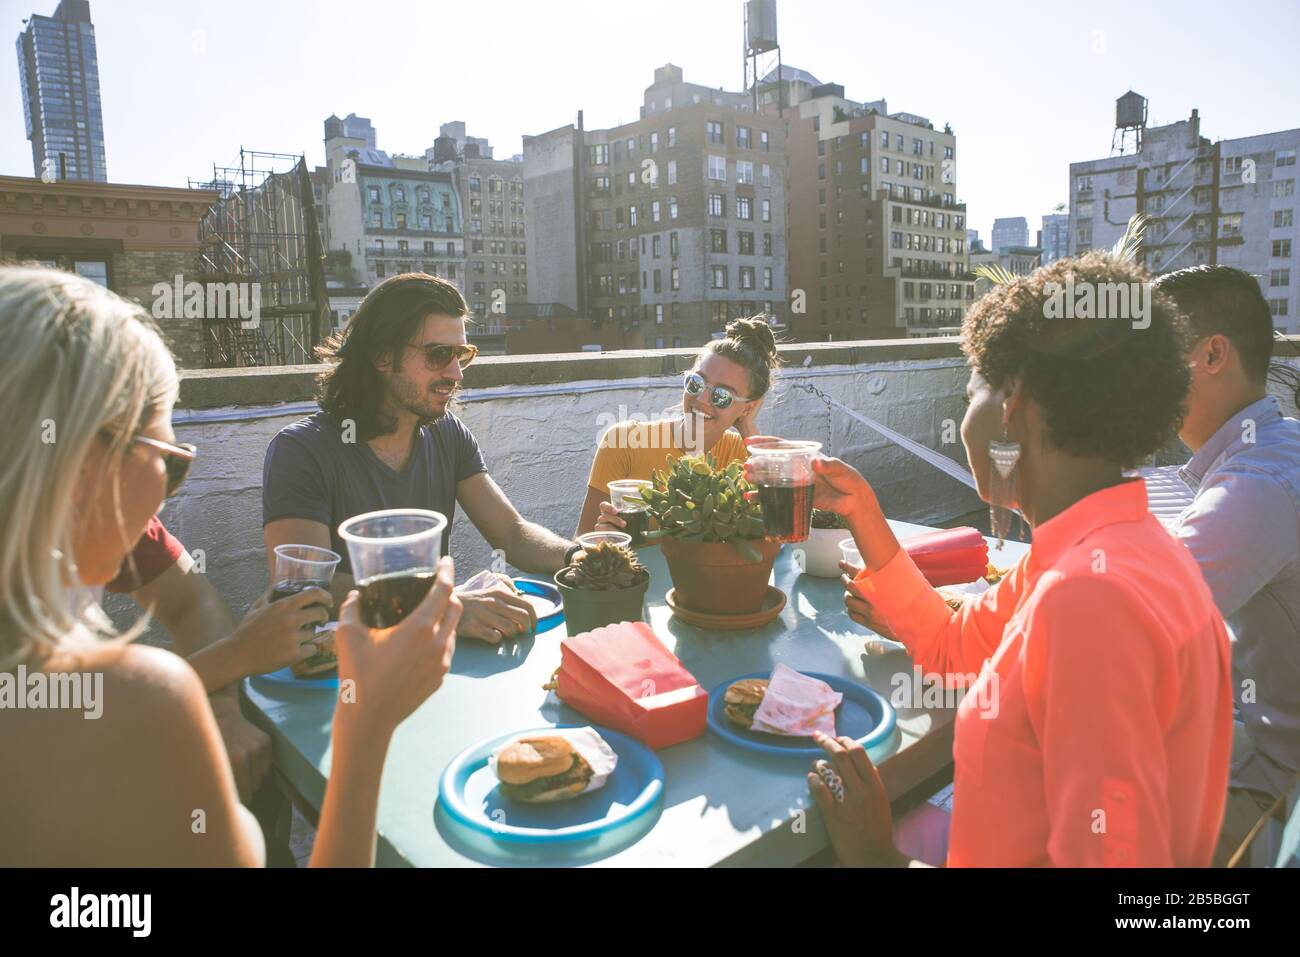 Group of friends apending time together on a rooftop in New york city, lifestyle concept with happy people Stock Photo